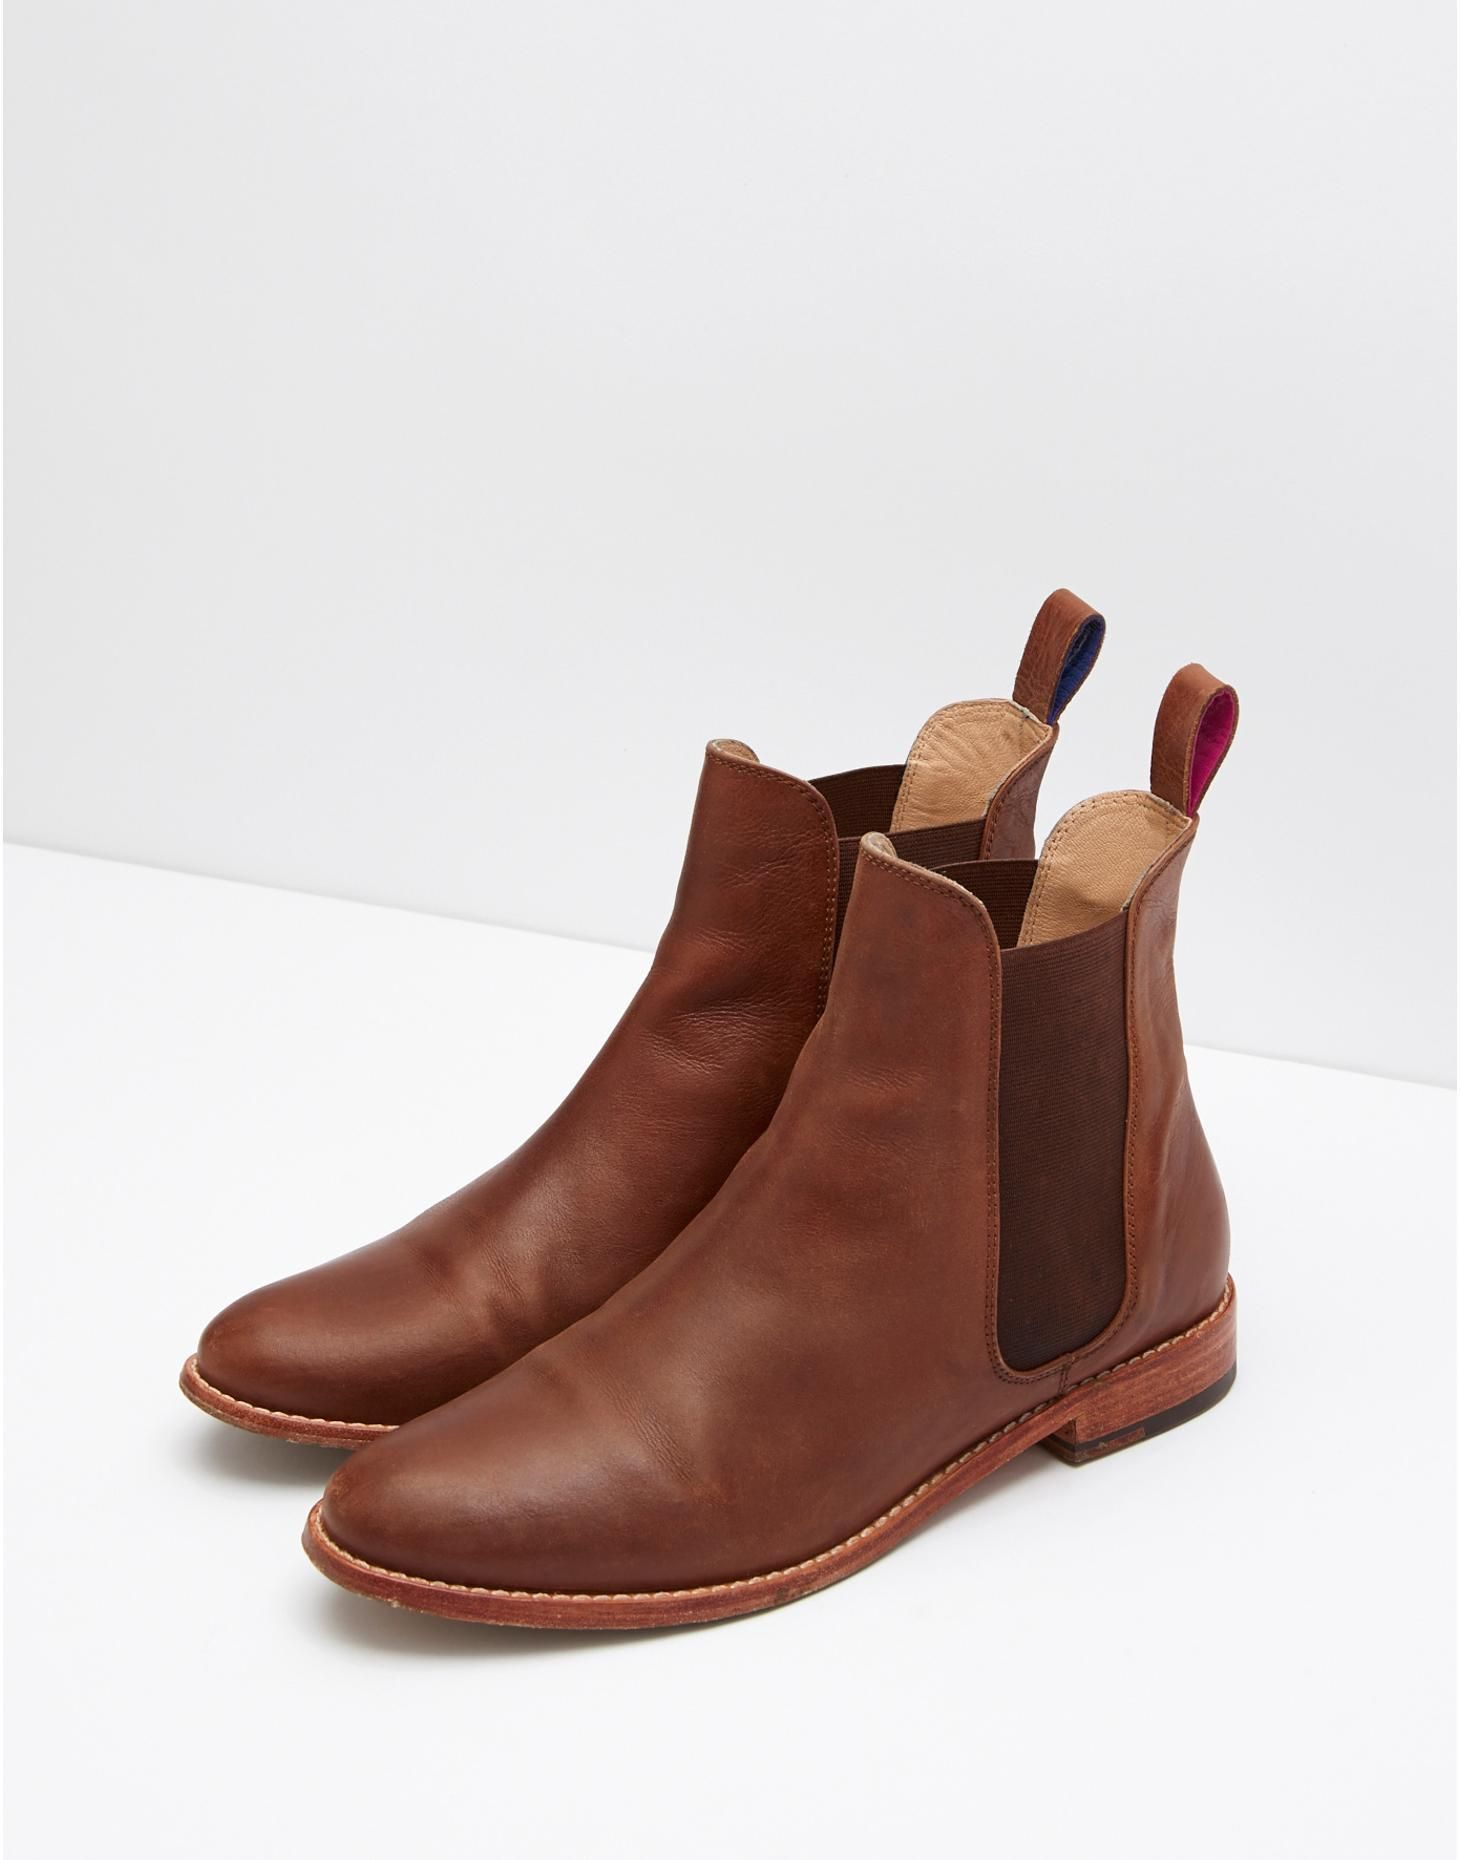 BELGRAVIA Womens Leather Chelsea Boot | Shoe Fotos | Pinterest ...